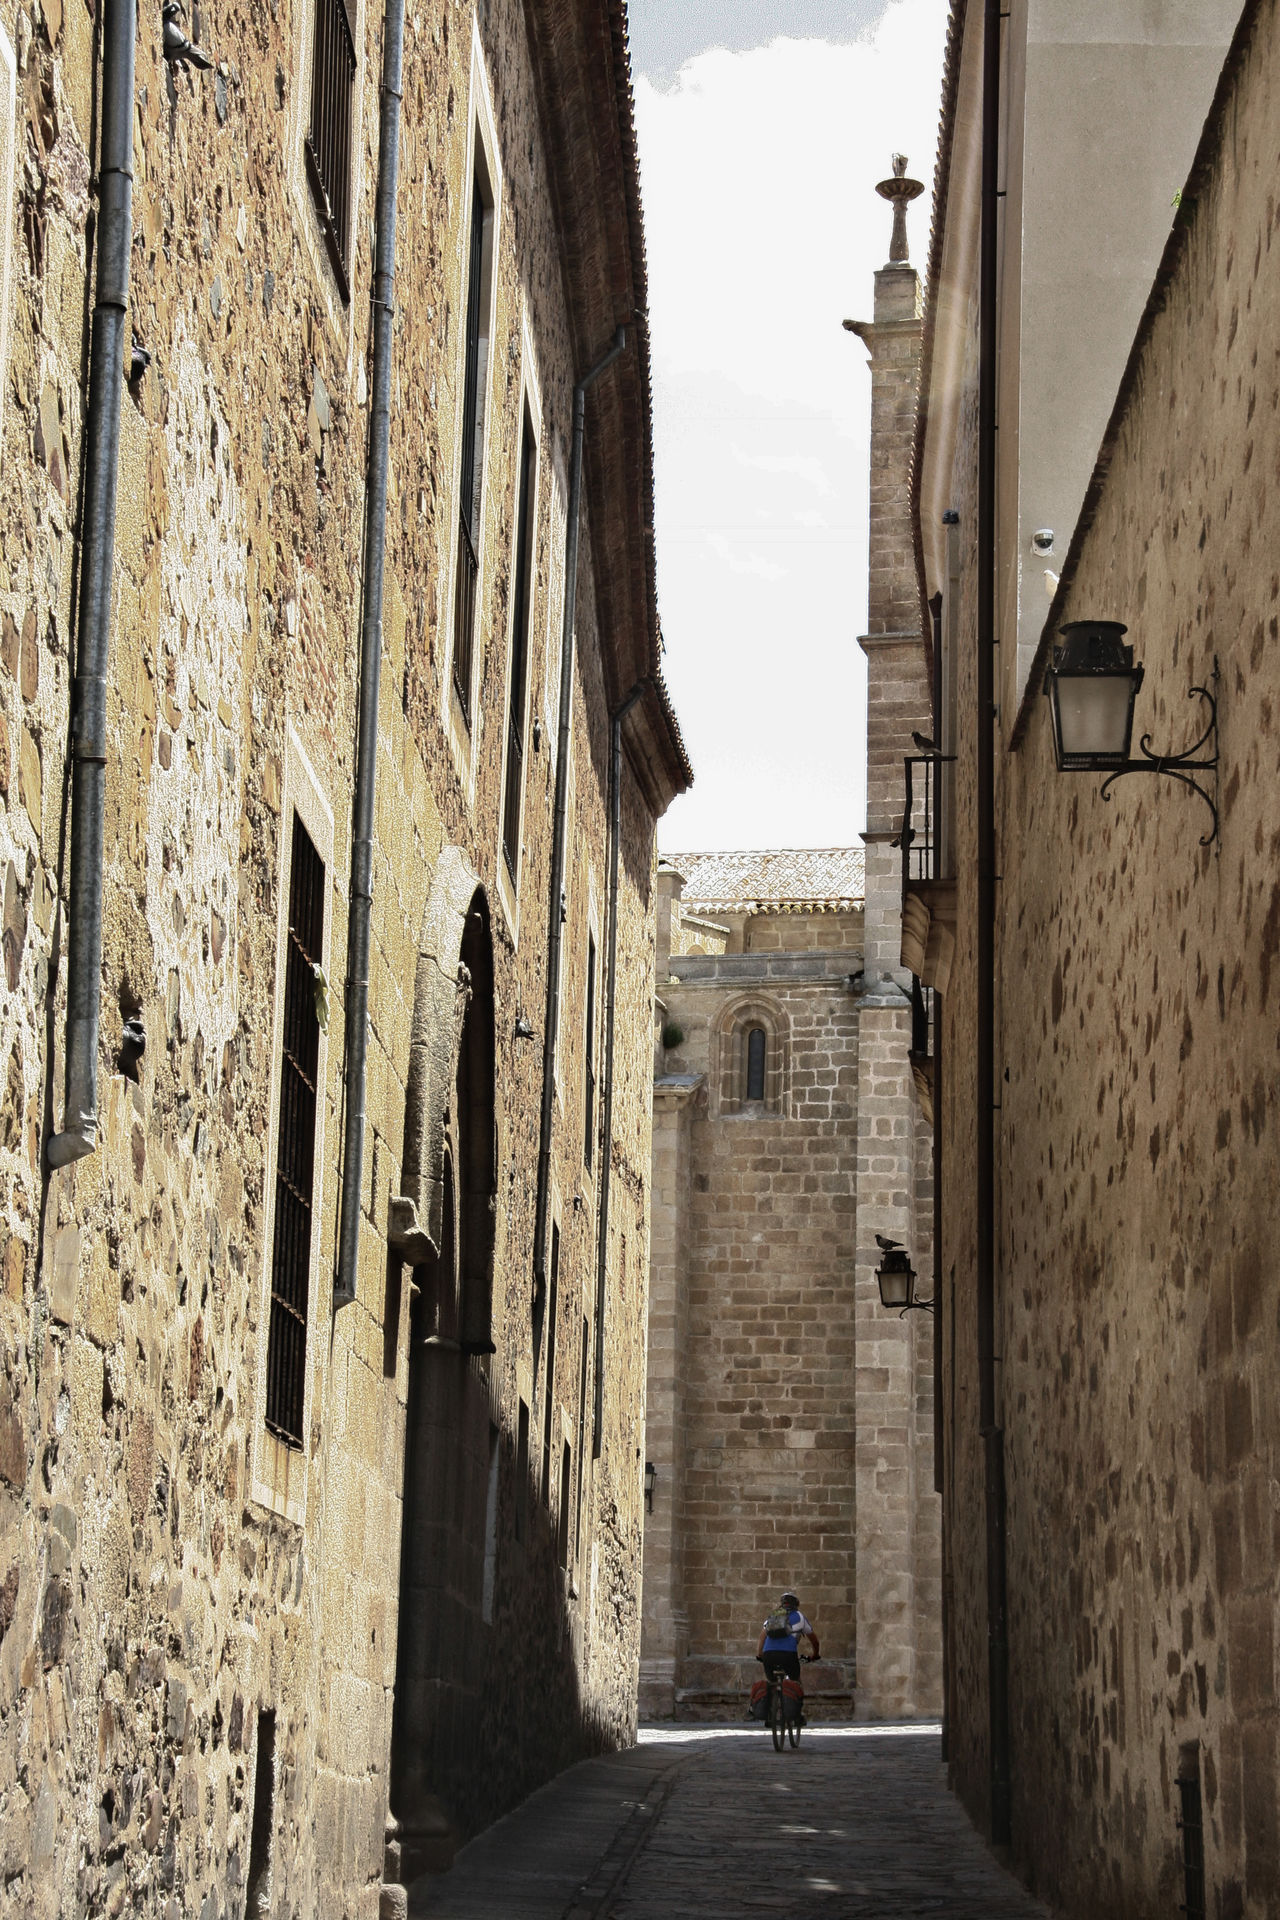 Biker crossing through the narrow streets of Caceres Old Town, Spain Architecture Building Exterior Built Structure City Day Men One Person Outdoors Real People Sky The Way Forward